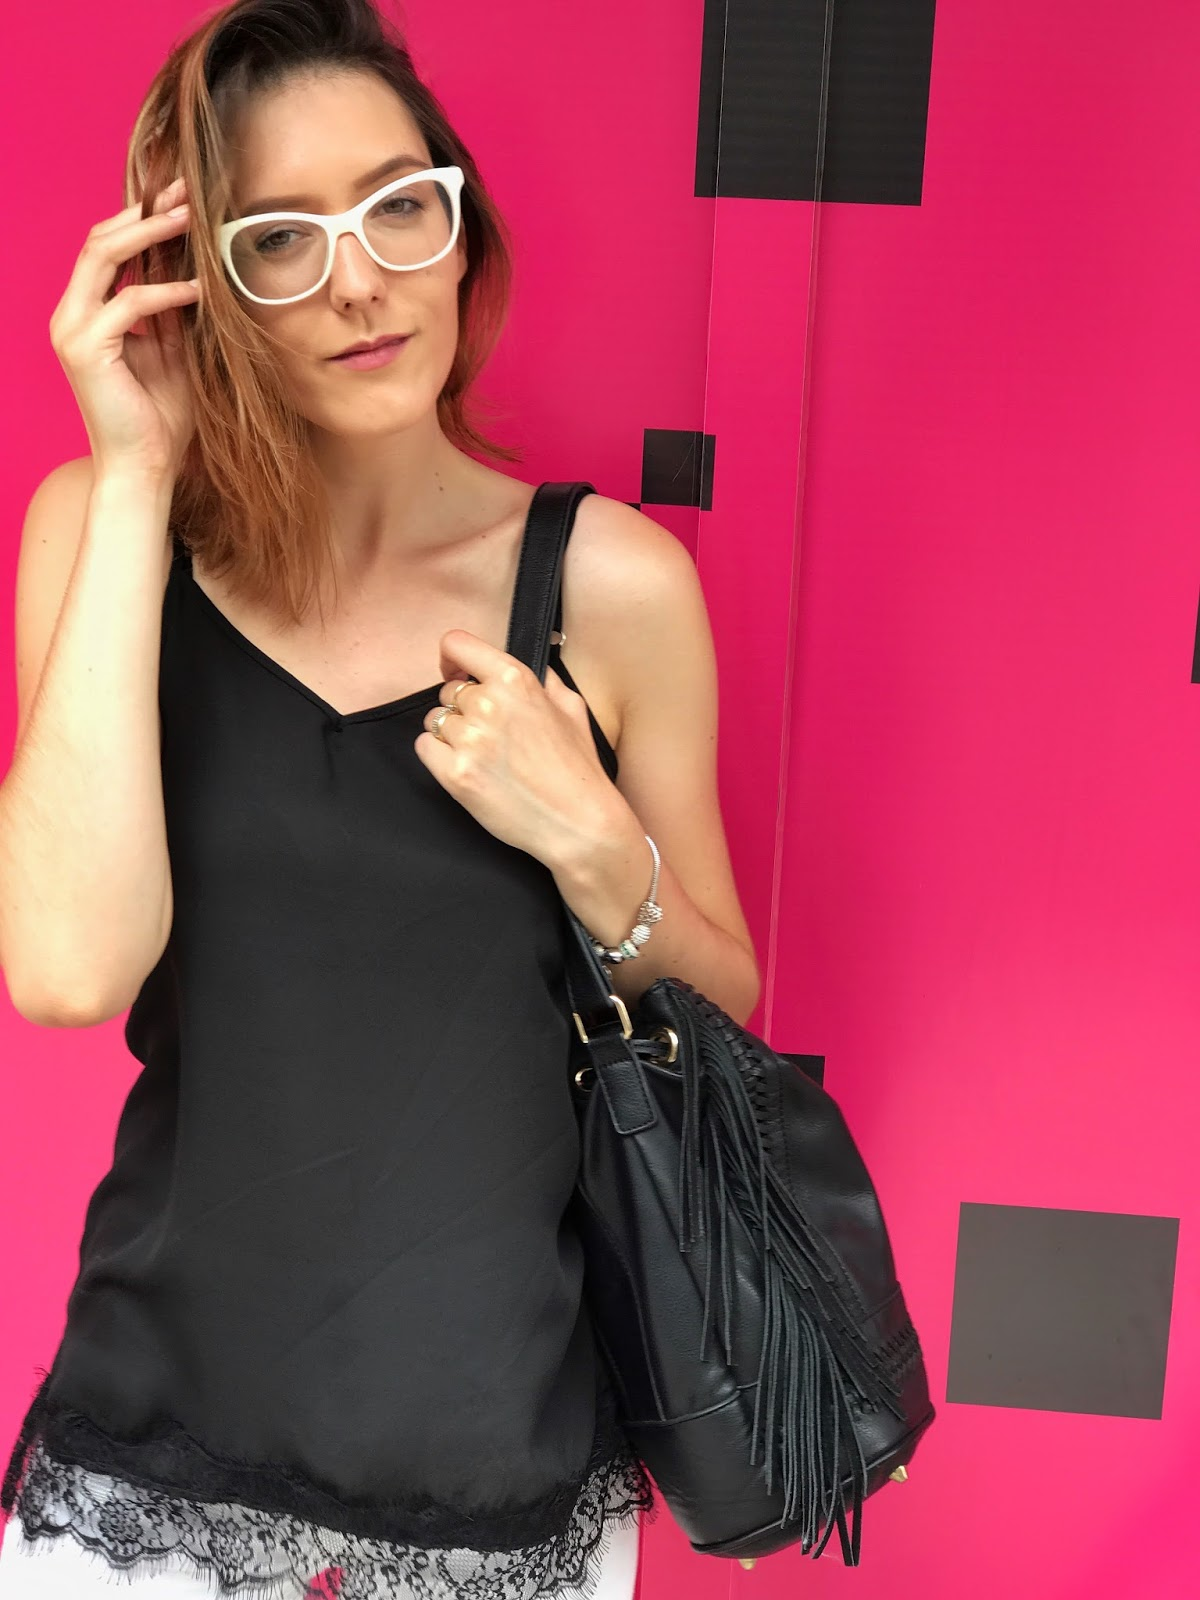 Black and white outfit pink wall